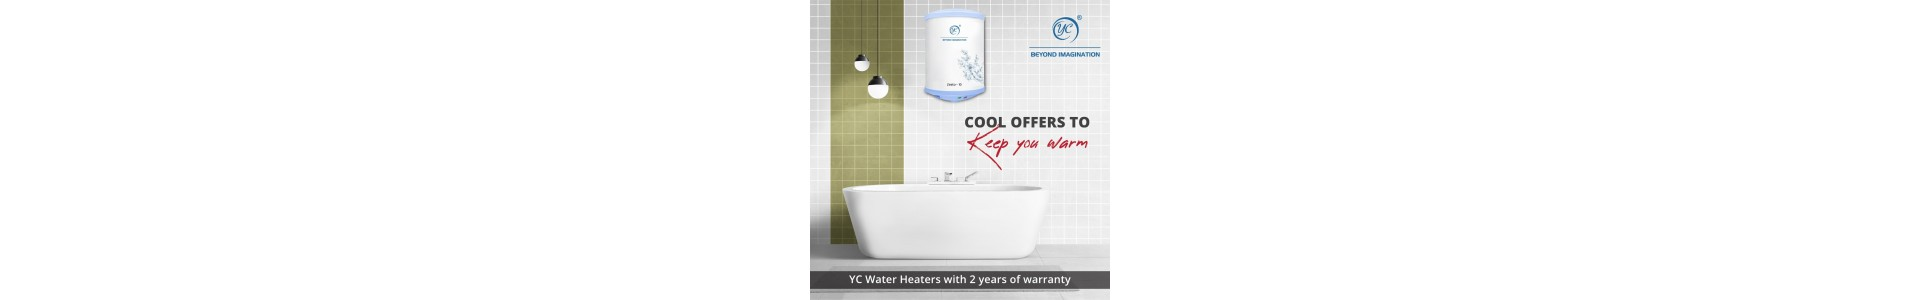 YC Water Heater Beyond Imagination | 7 Year Replacement Warranty  | Low Price